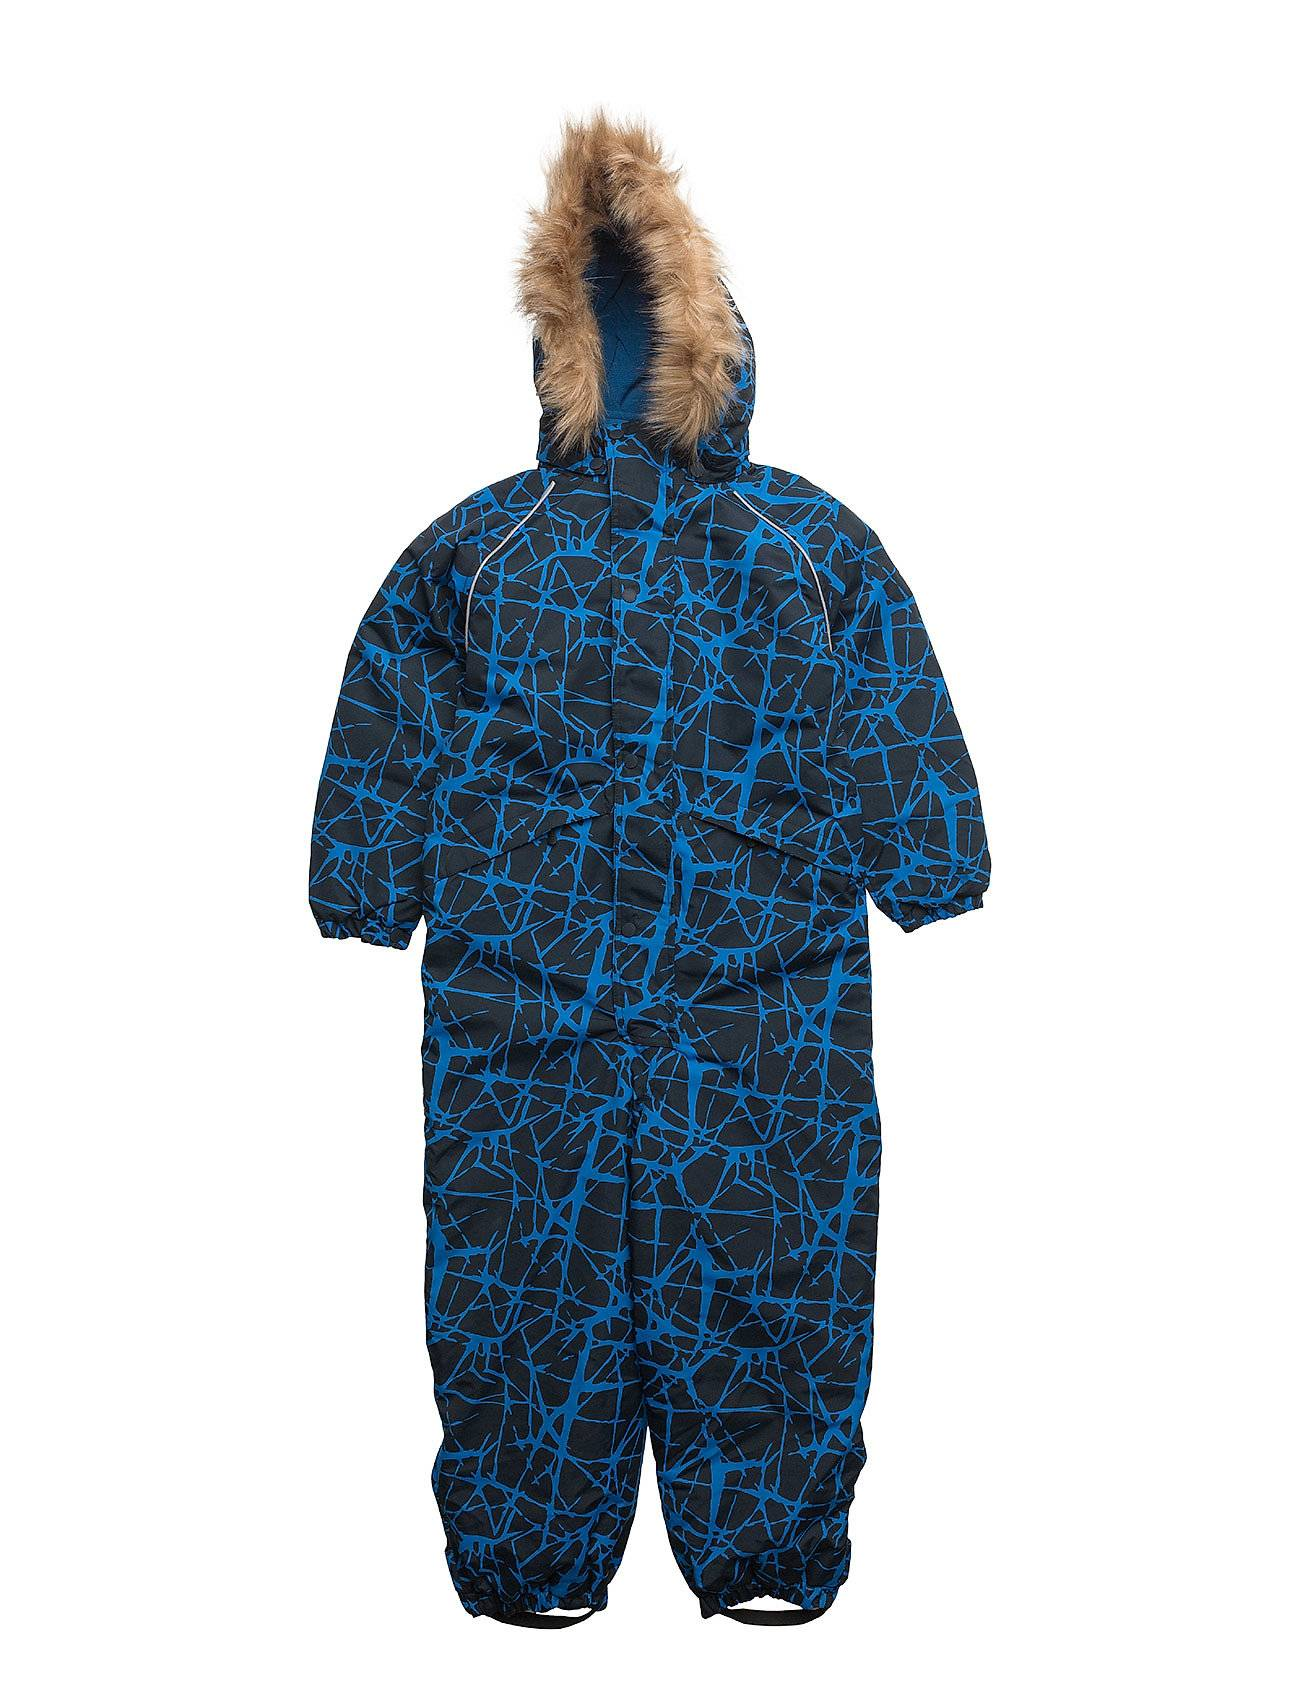 Ticket to Heaven Othello Snowsuit With Detachable Hood Allover